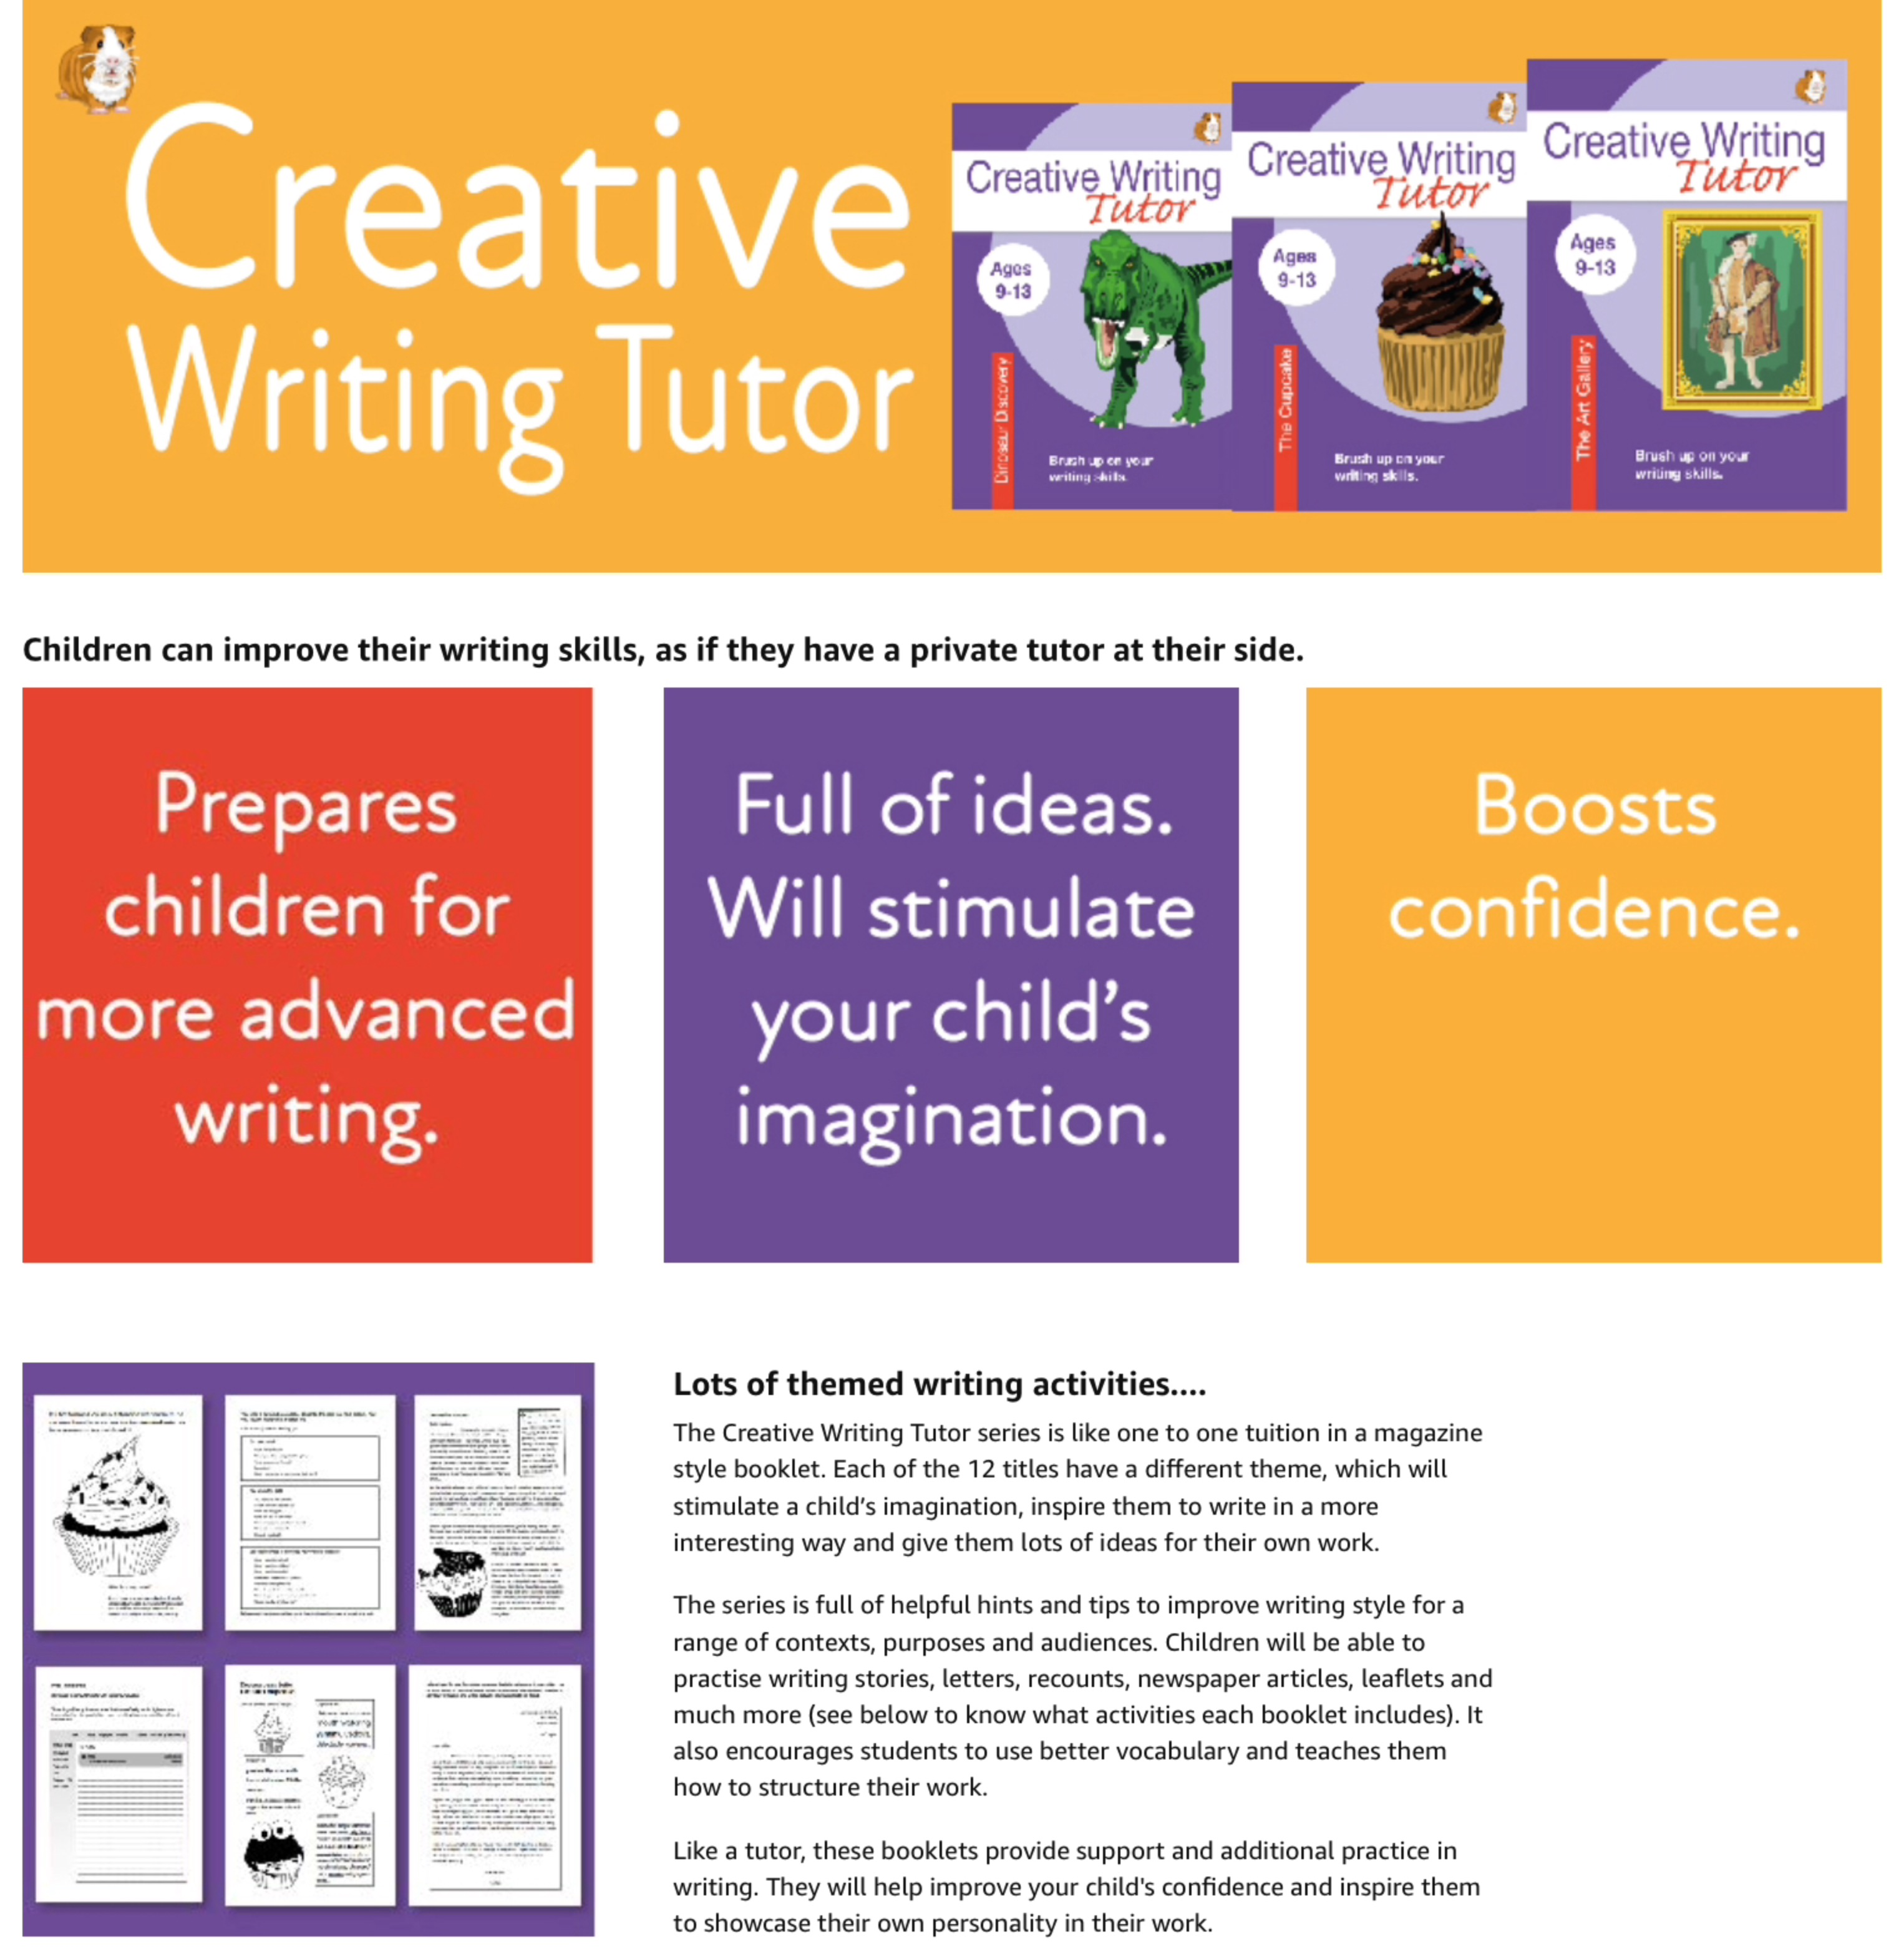 Looking At People's Lives: Brush Up On Your Writing Skills (Creative Writing Tutor) (9-13 years)